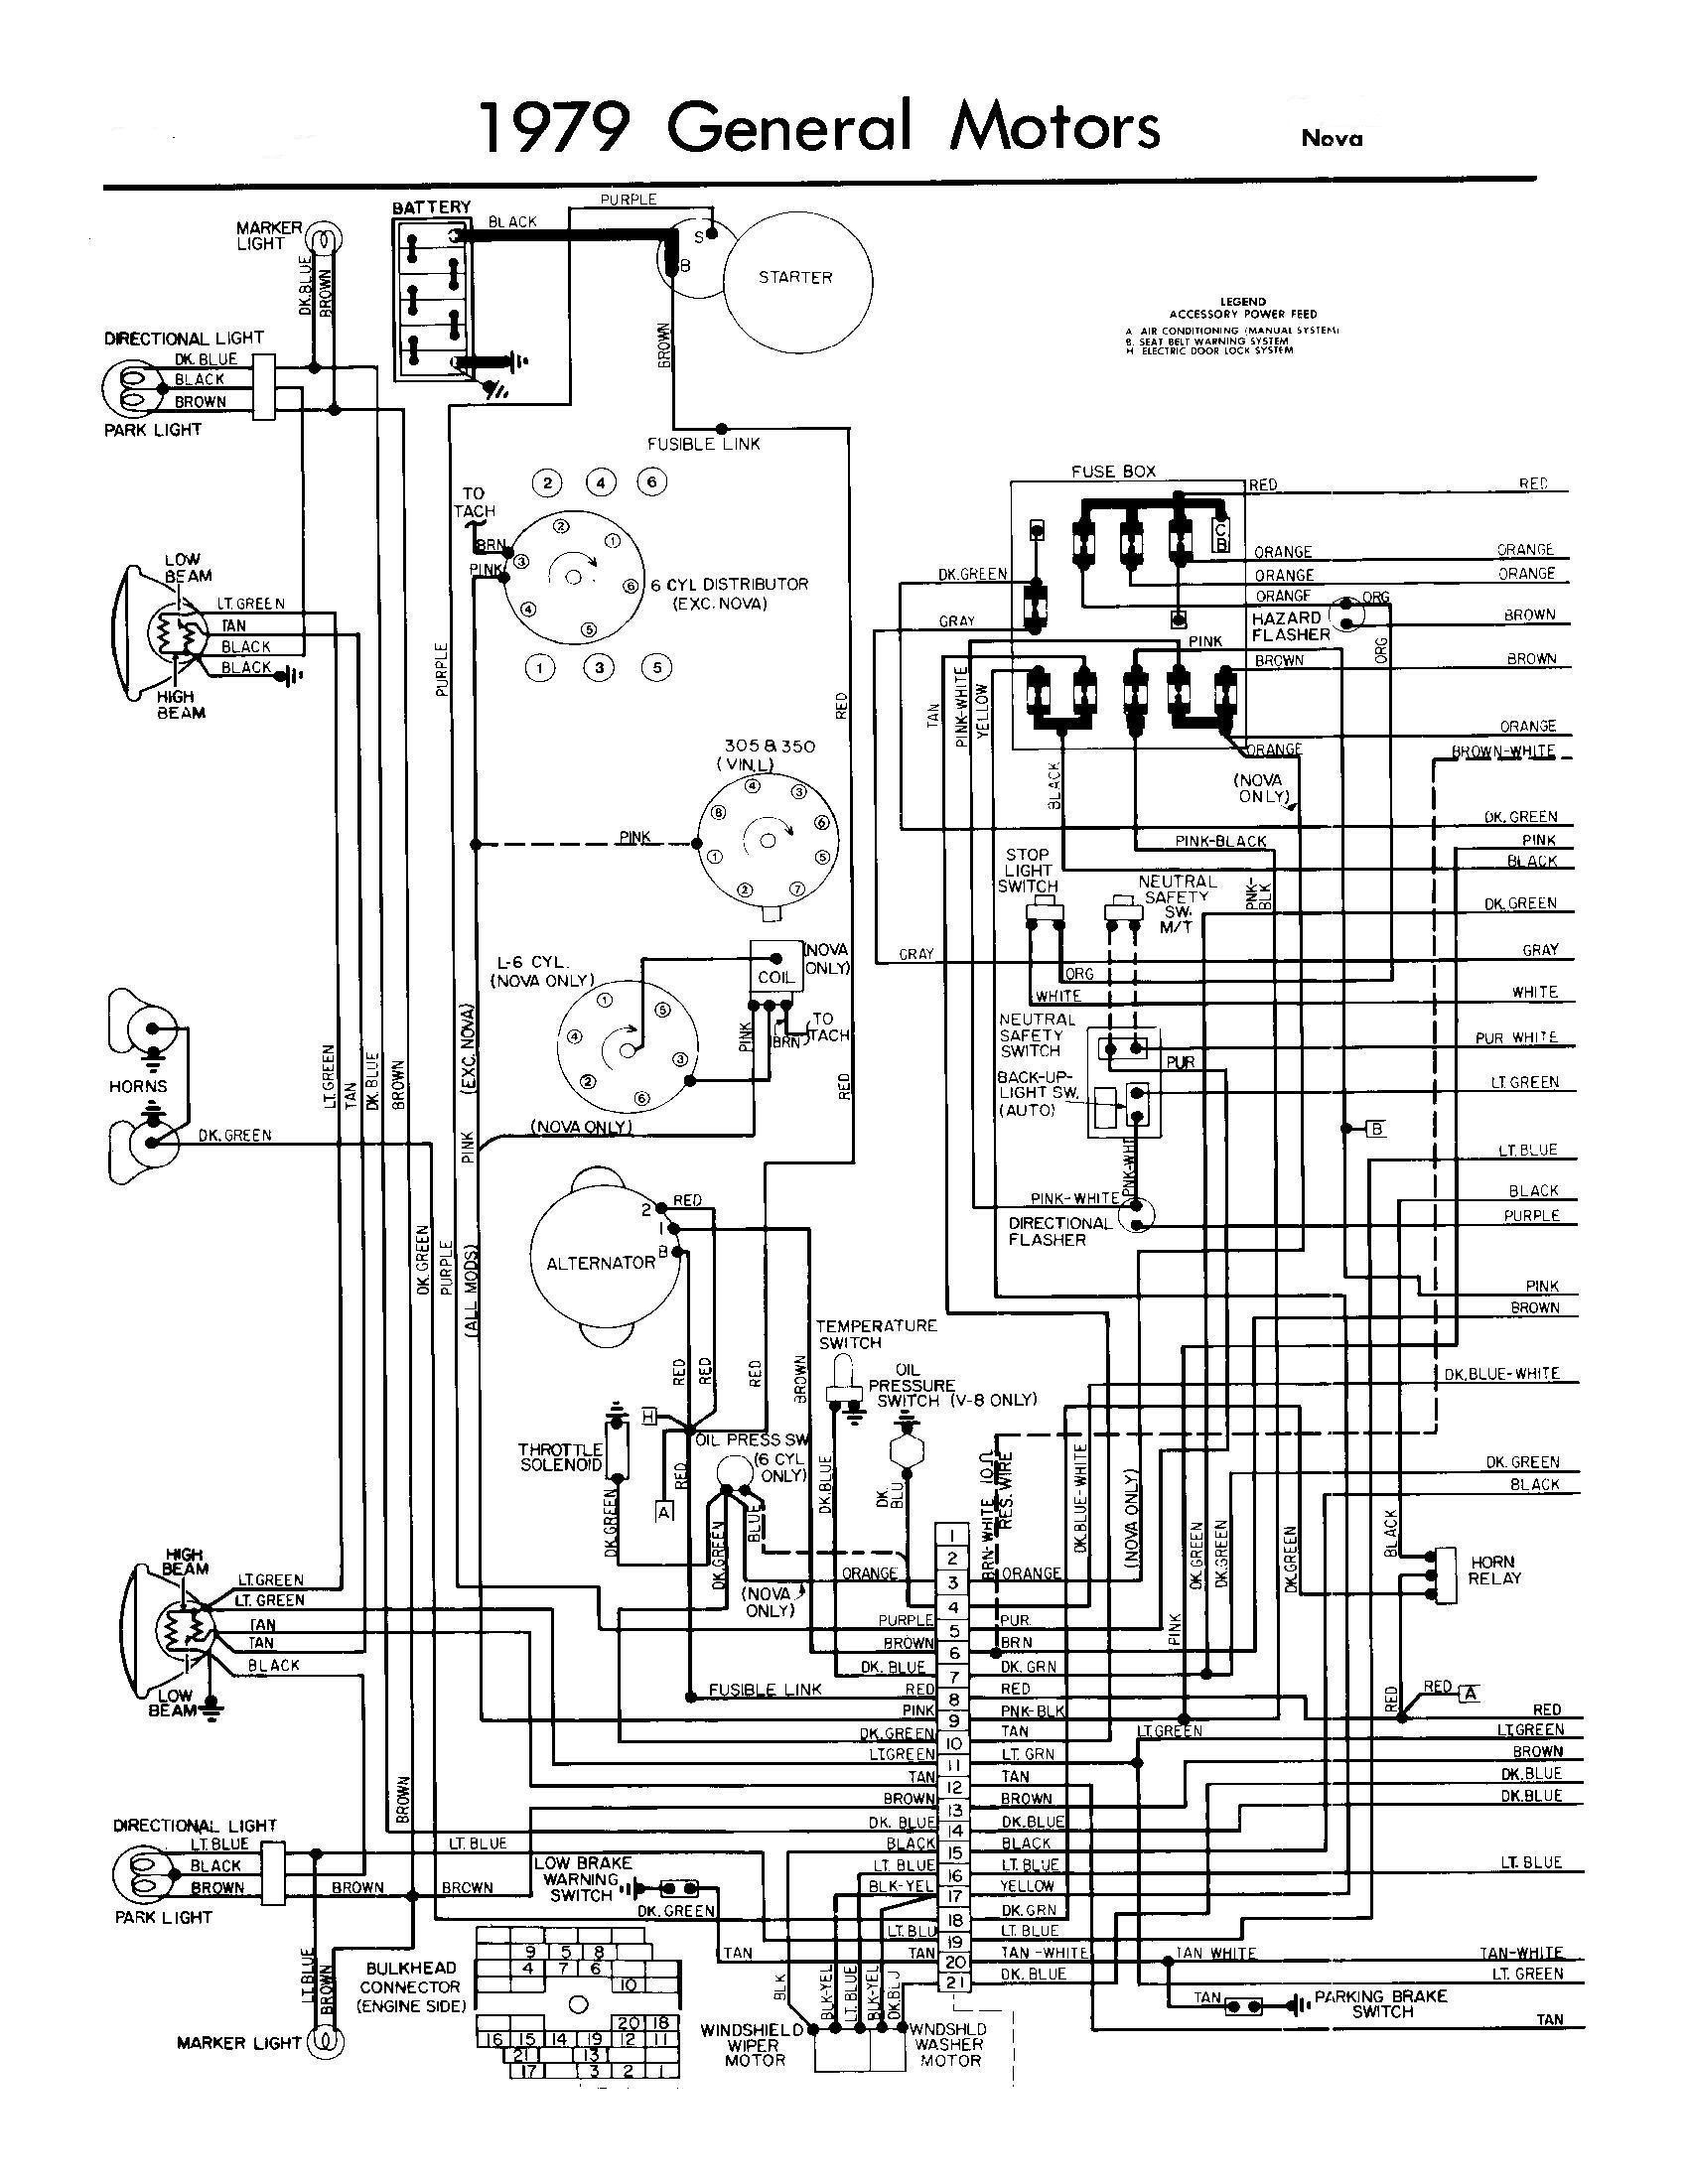 1984 CHEVY CORVETTE    WIRING       DIAGRAM     Auto Electrical